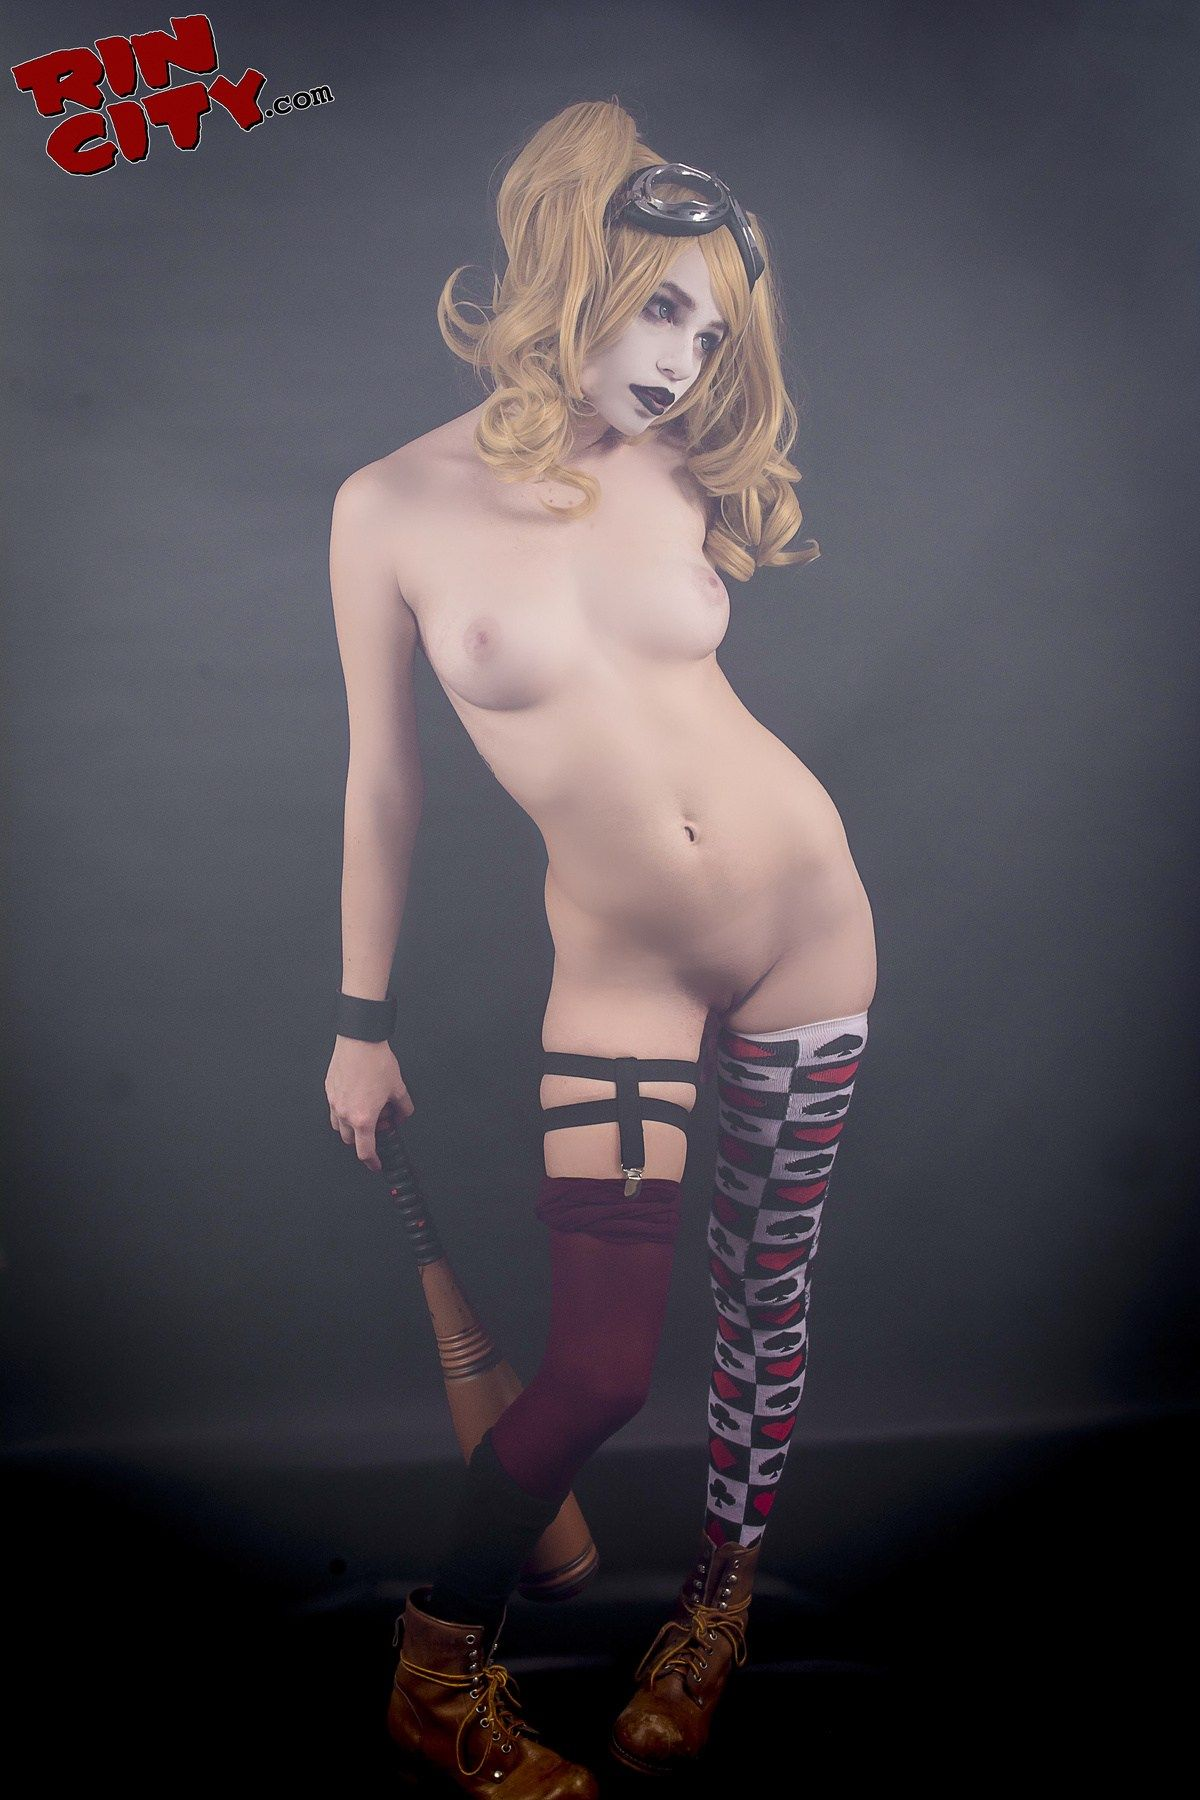 harley quinn nude pussy